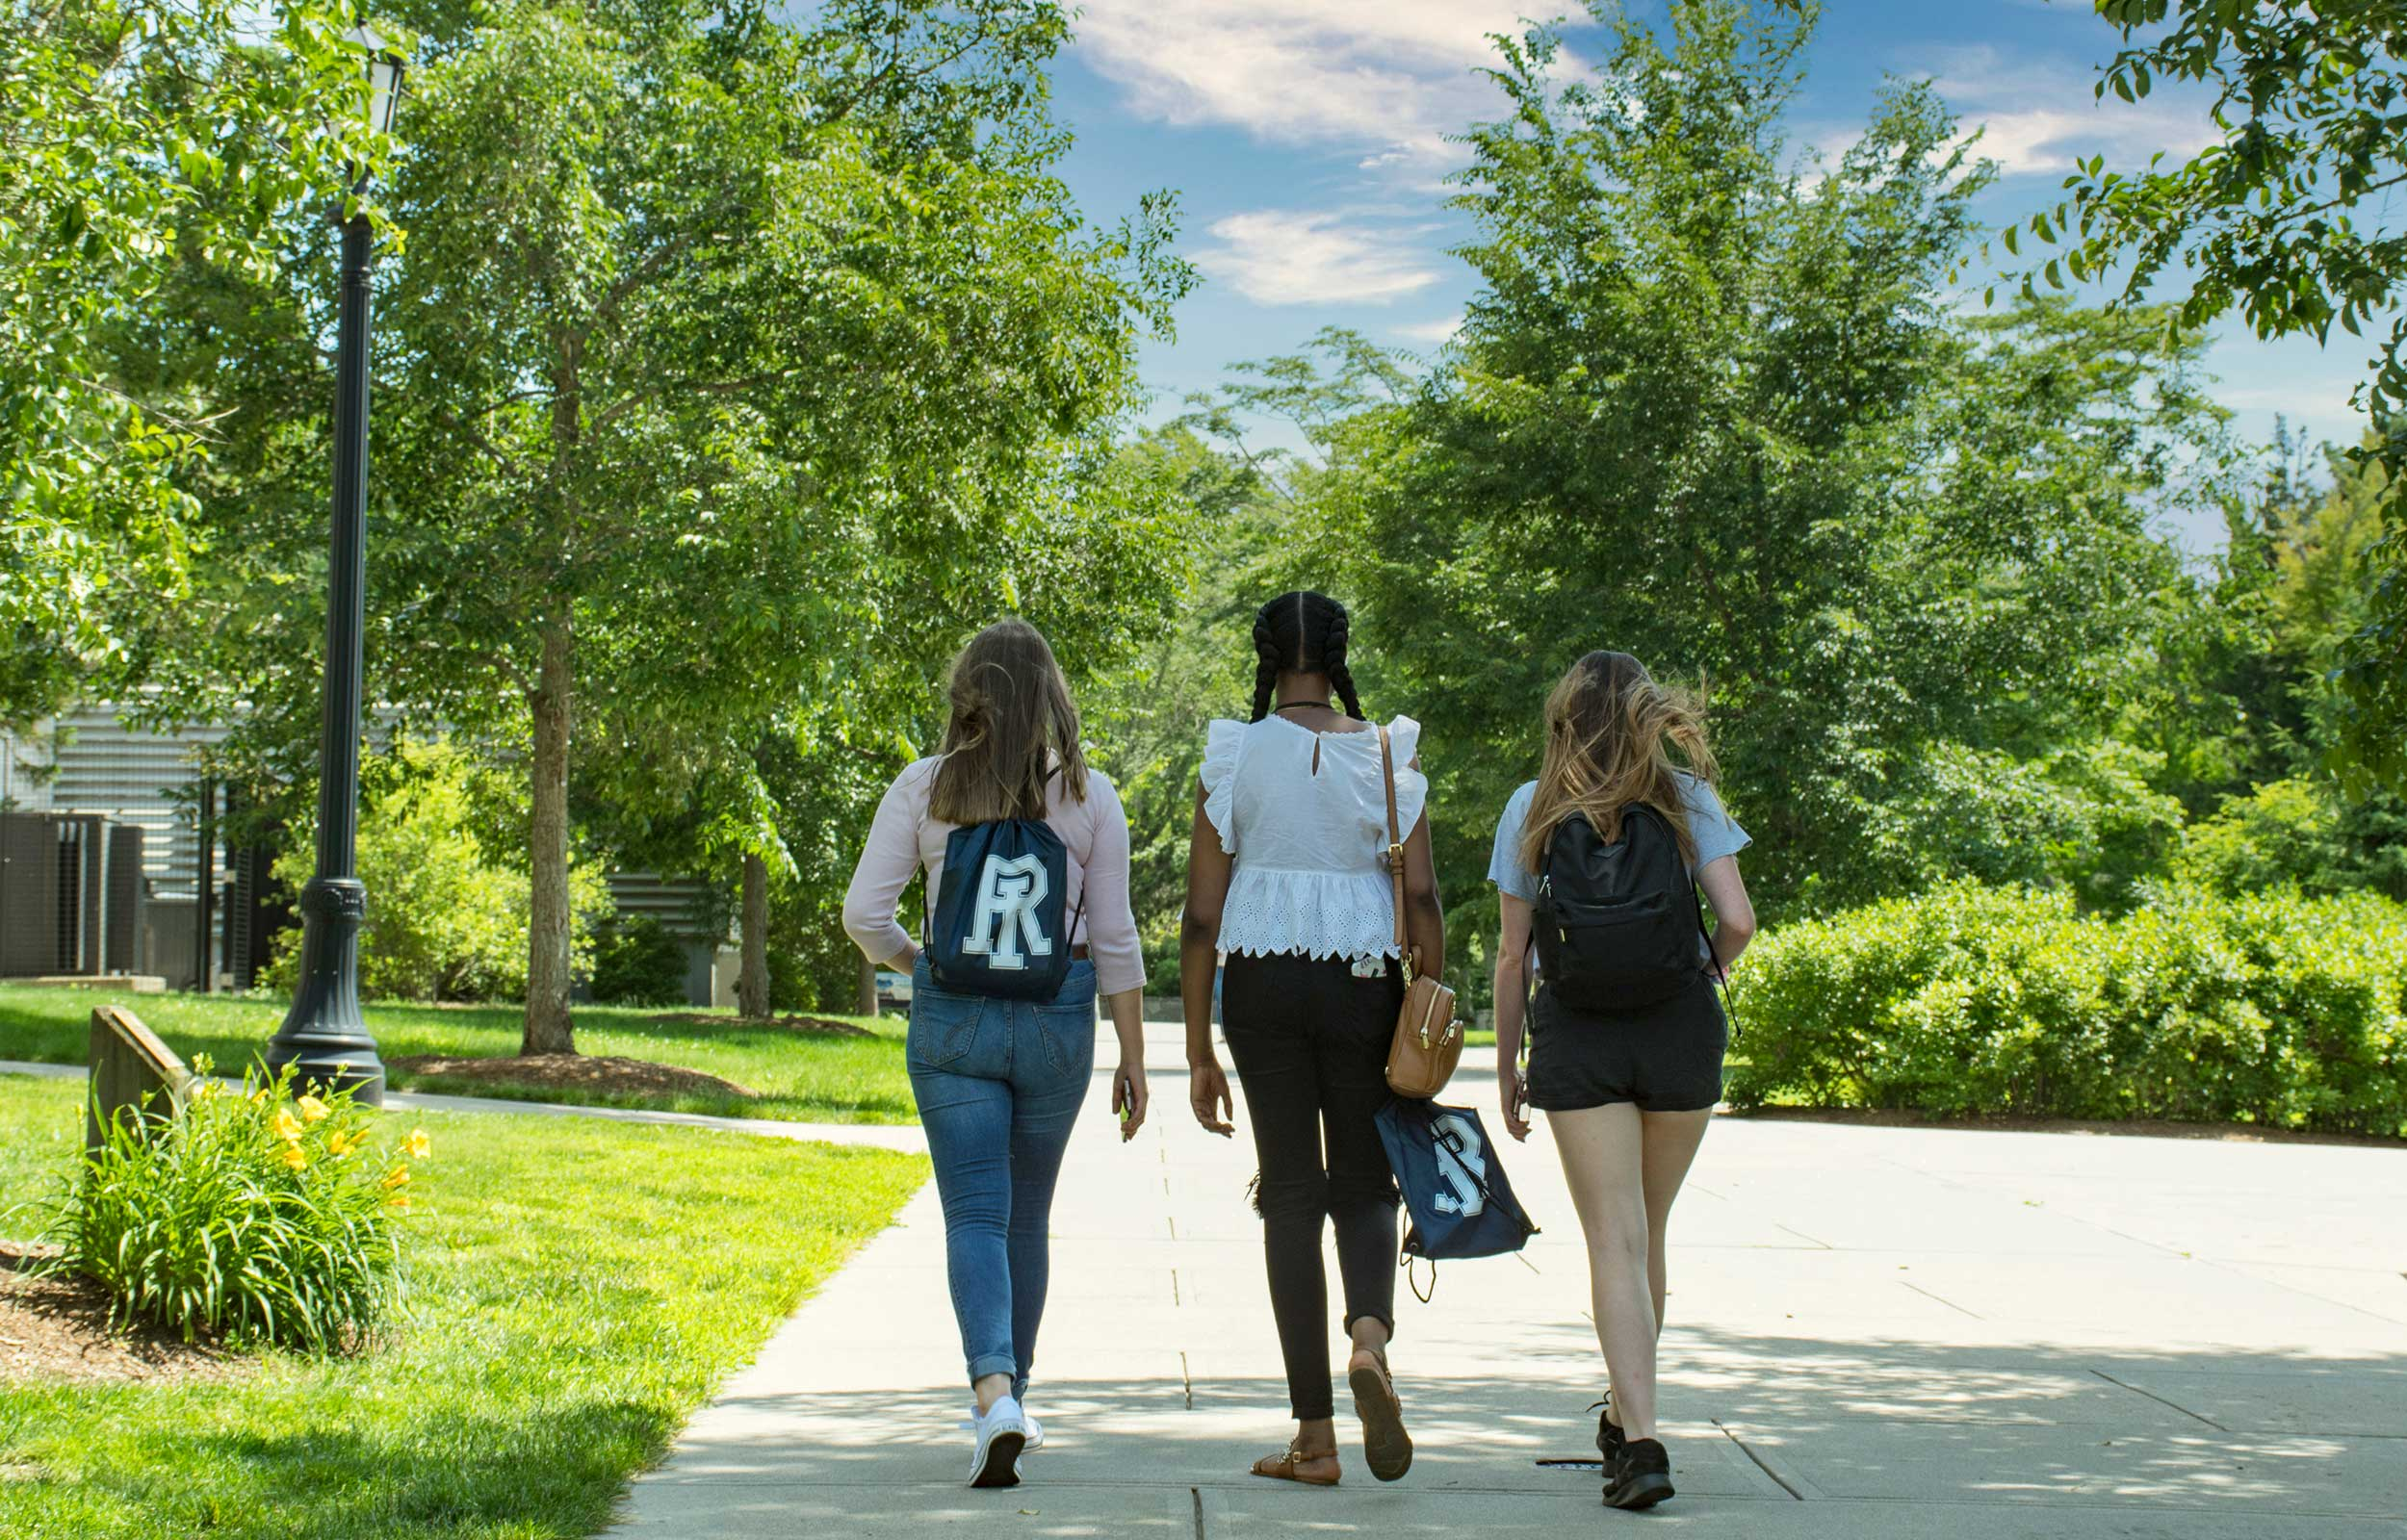 Three students walking together (back view) on campus in the spring